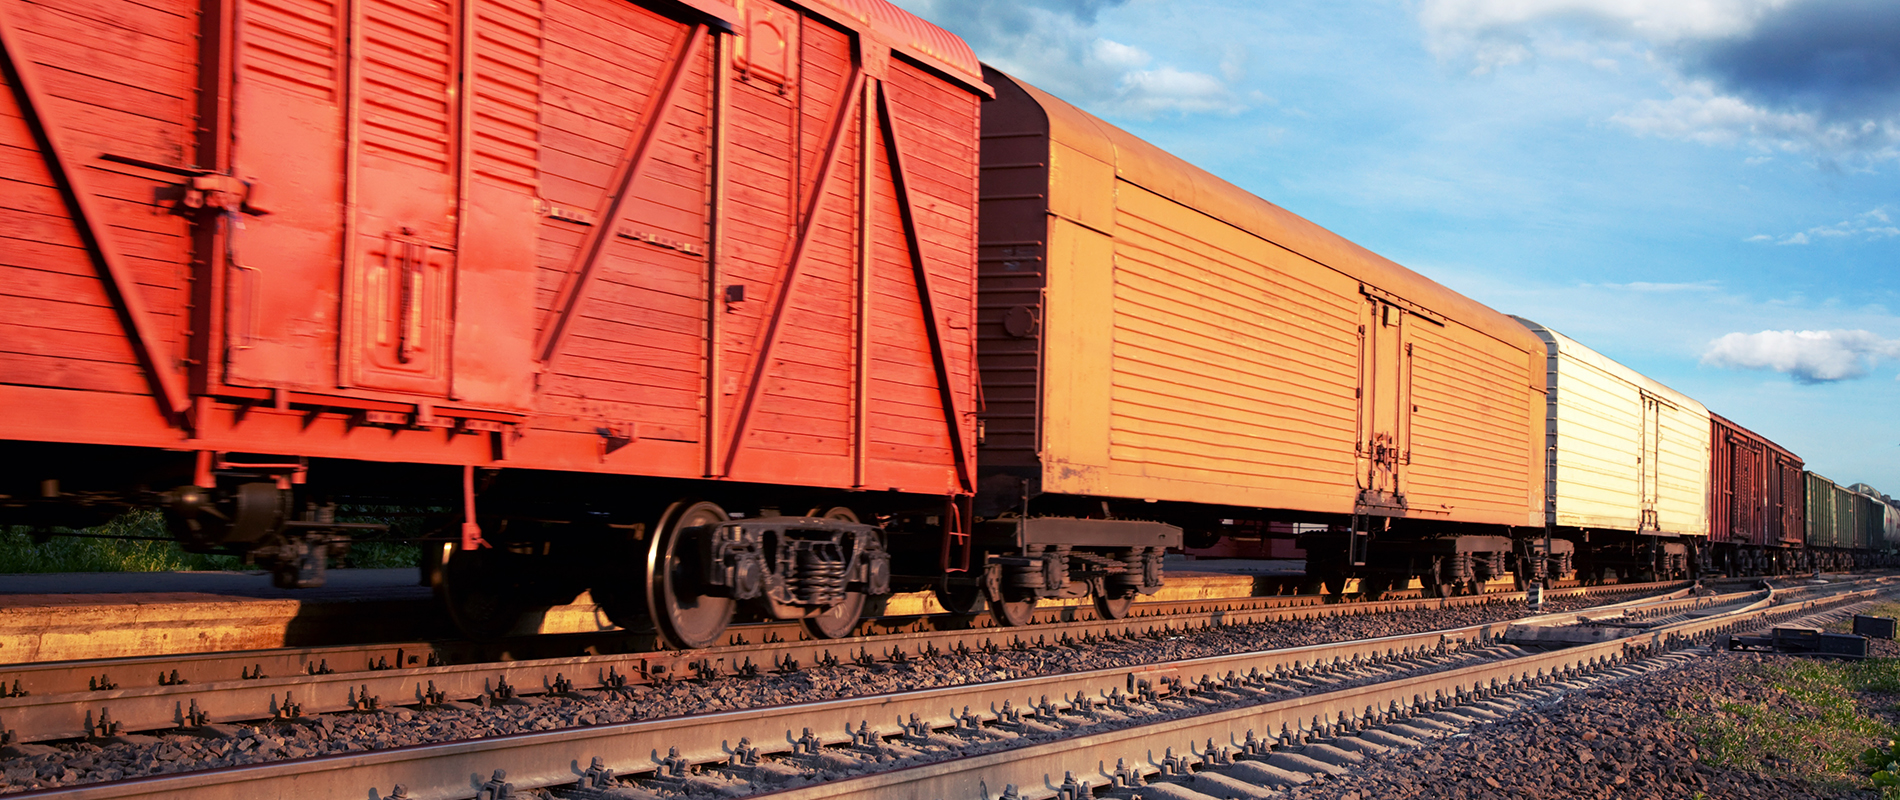 Freight train cars on railroad tracks